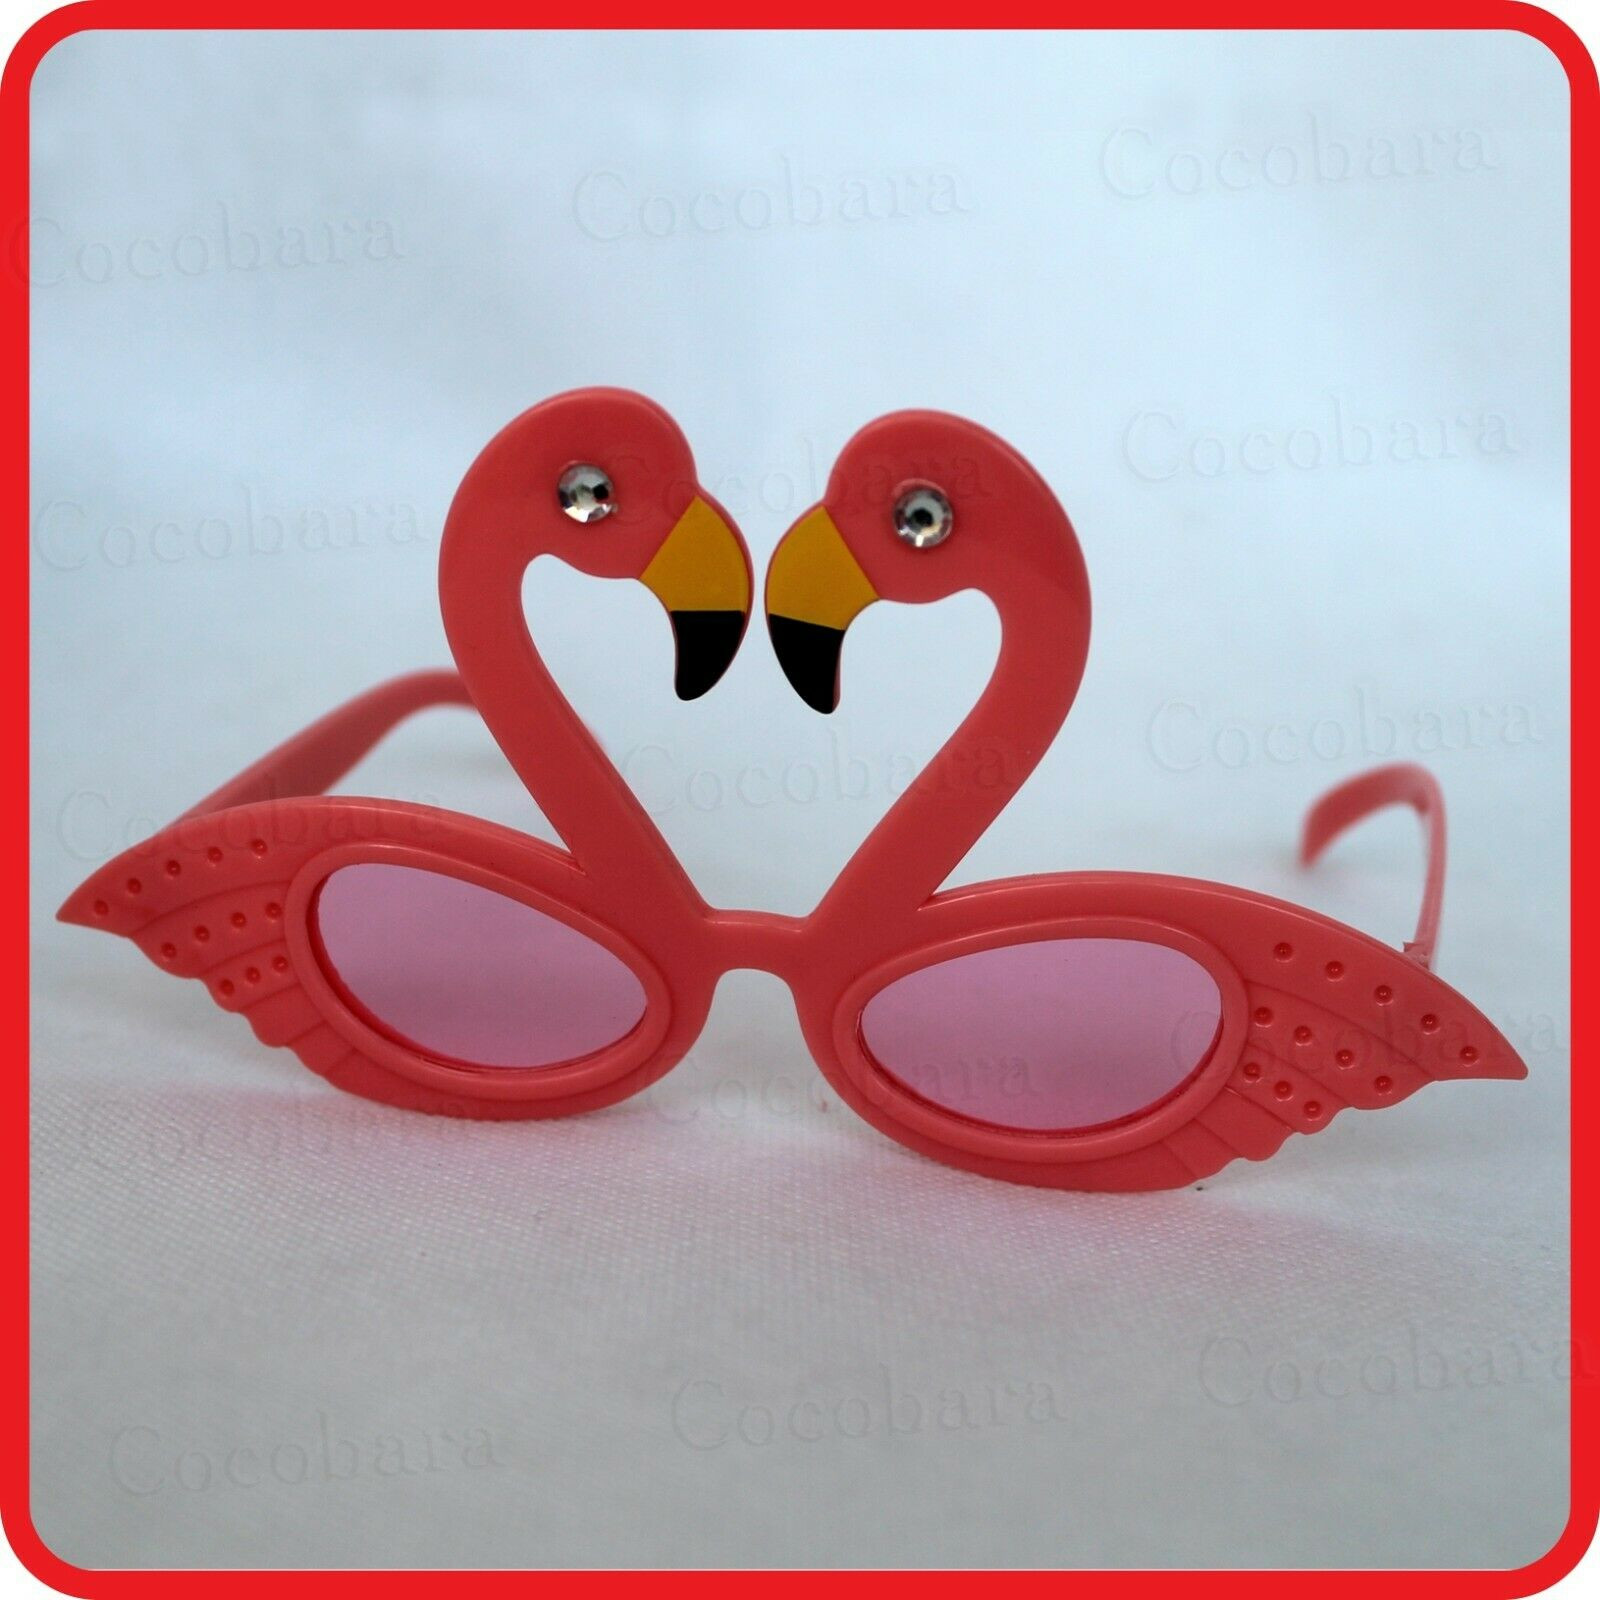 FLAMINGO BIRD SWAN GLASSES SUNGLASSES-TROPICAL HOLIDAY-COSTUME -PARTY-DRESS UP